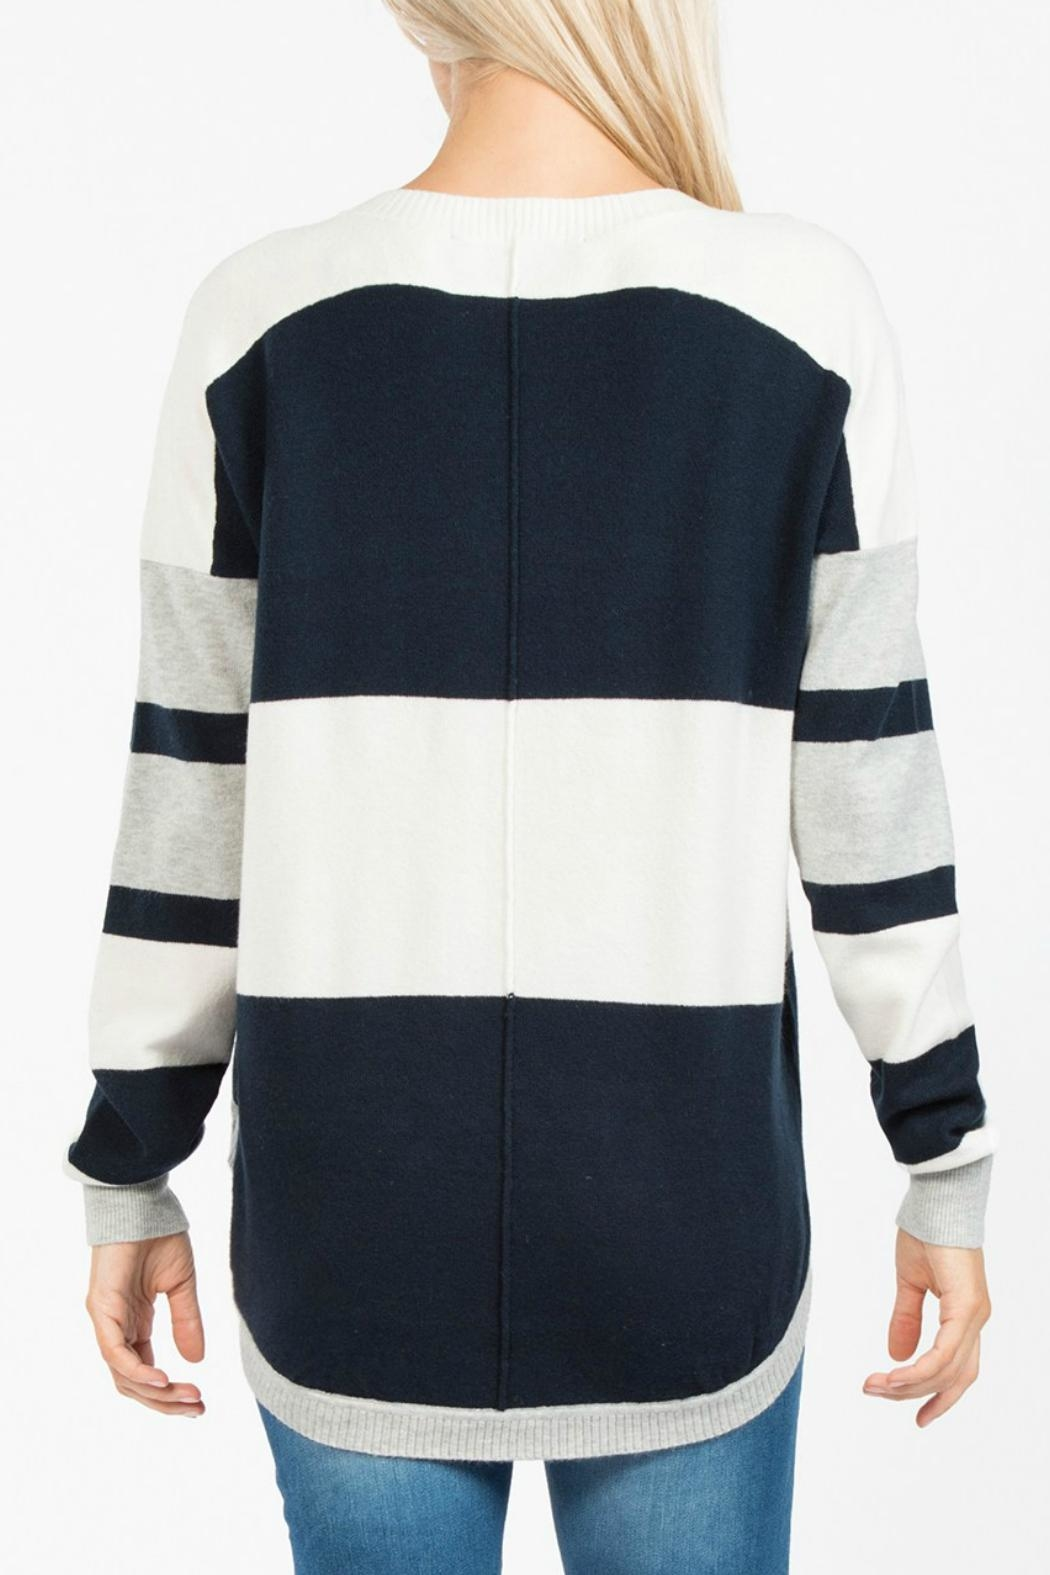 French Connection Varsity Vhari Knit Jumper - Front Full Image